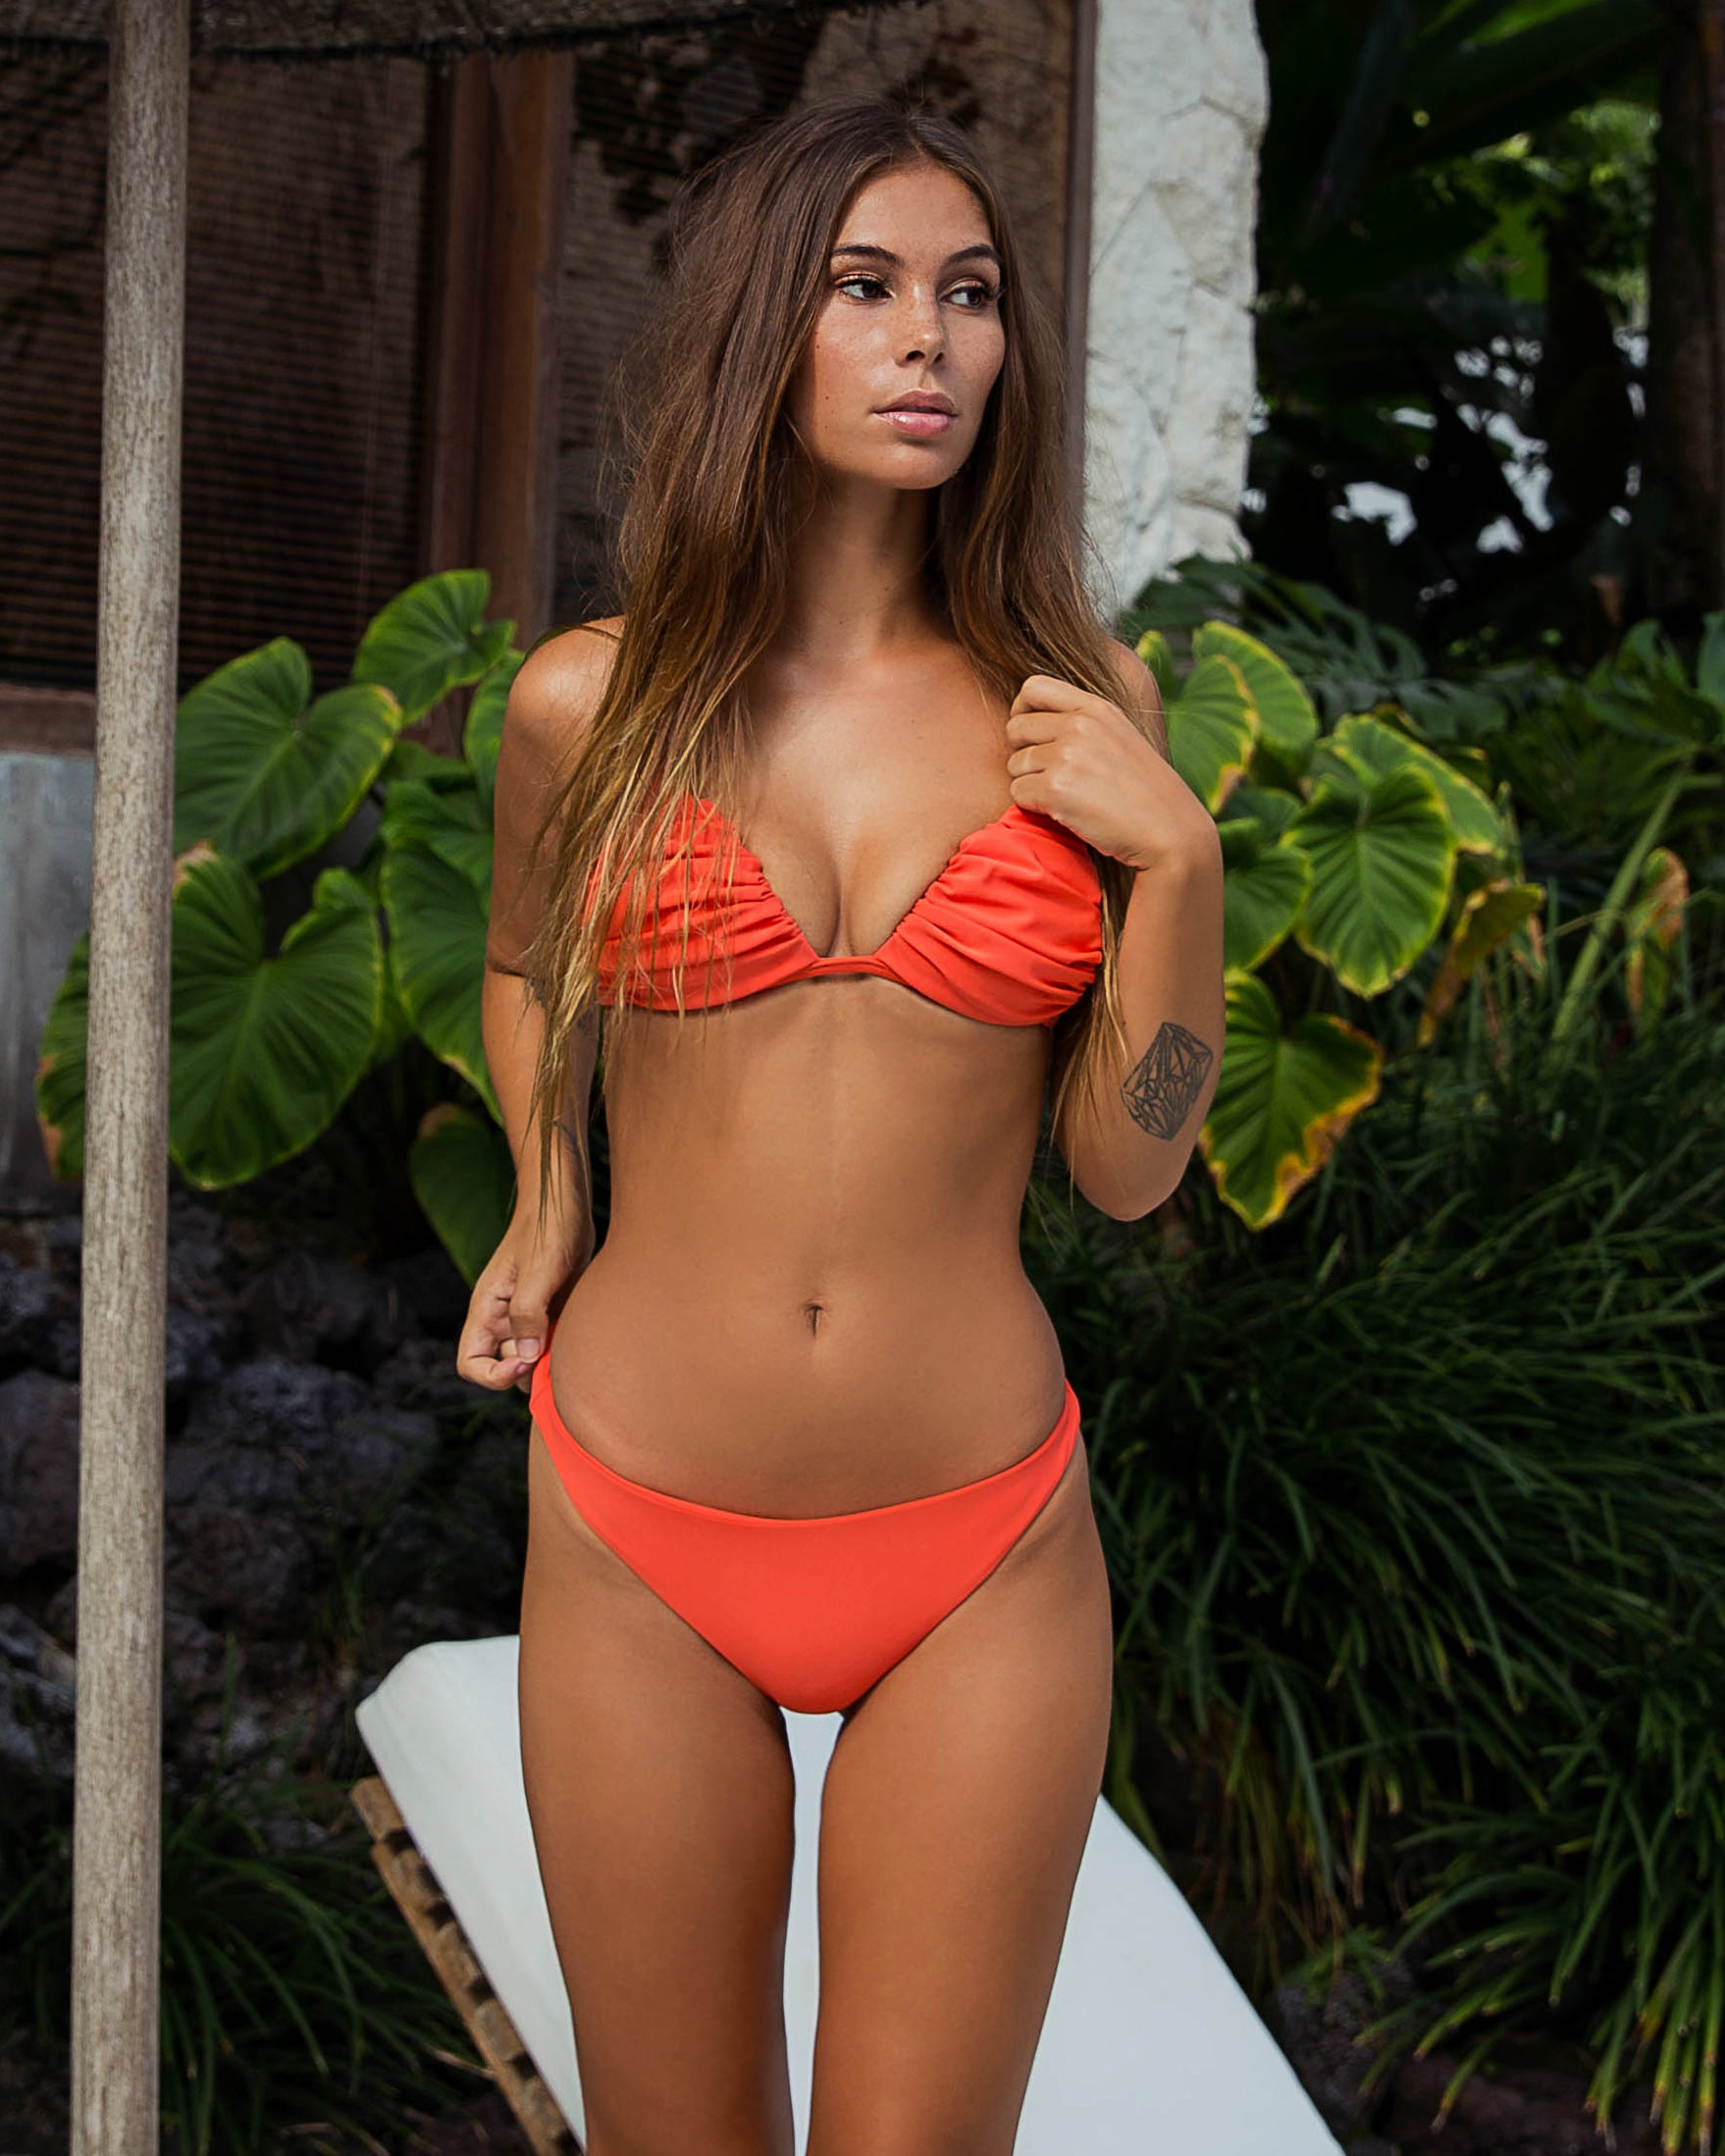 Rio Claro Top - Italian Coral - cheeky cut brazilian surf bikinis Cenote Swimwear that stays on in the surf